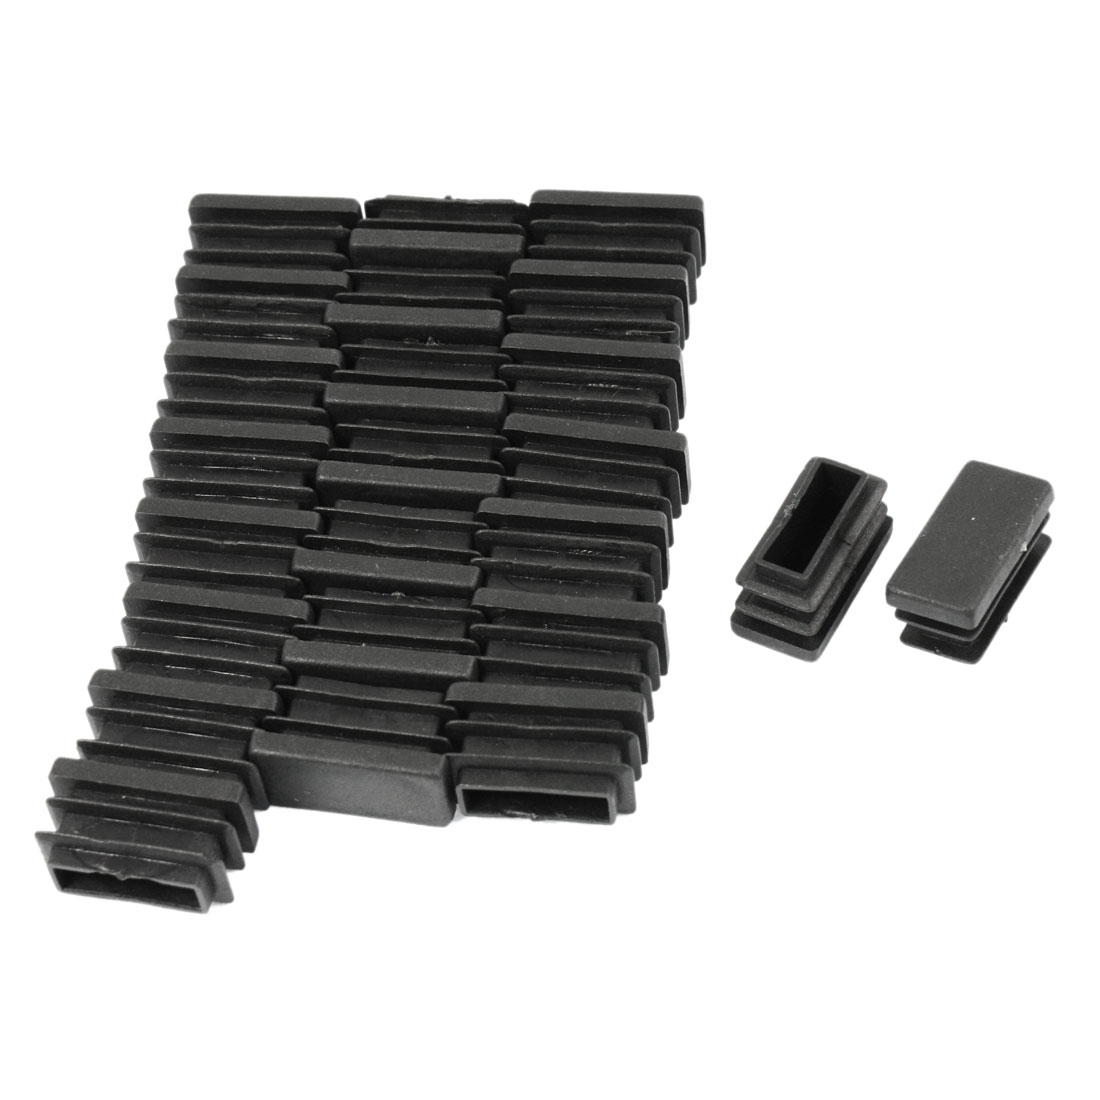 24 Pcs 13mm x 26mm Plastic Blanking End Caps Rectangle Tubing Tube Pipe Insert